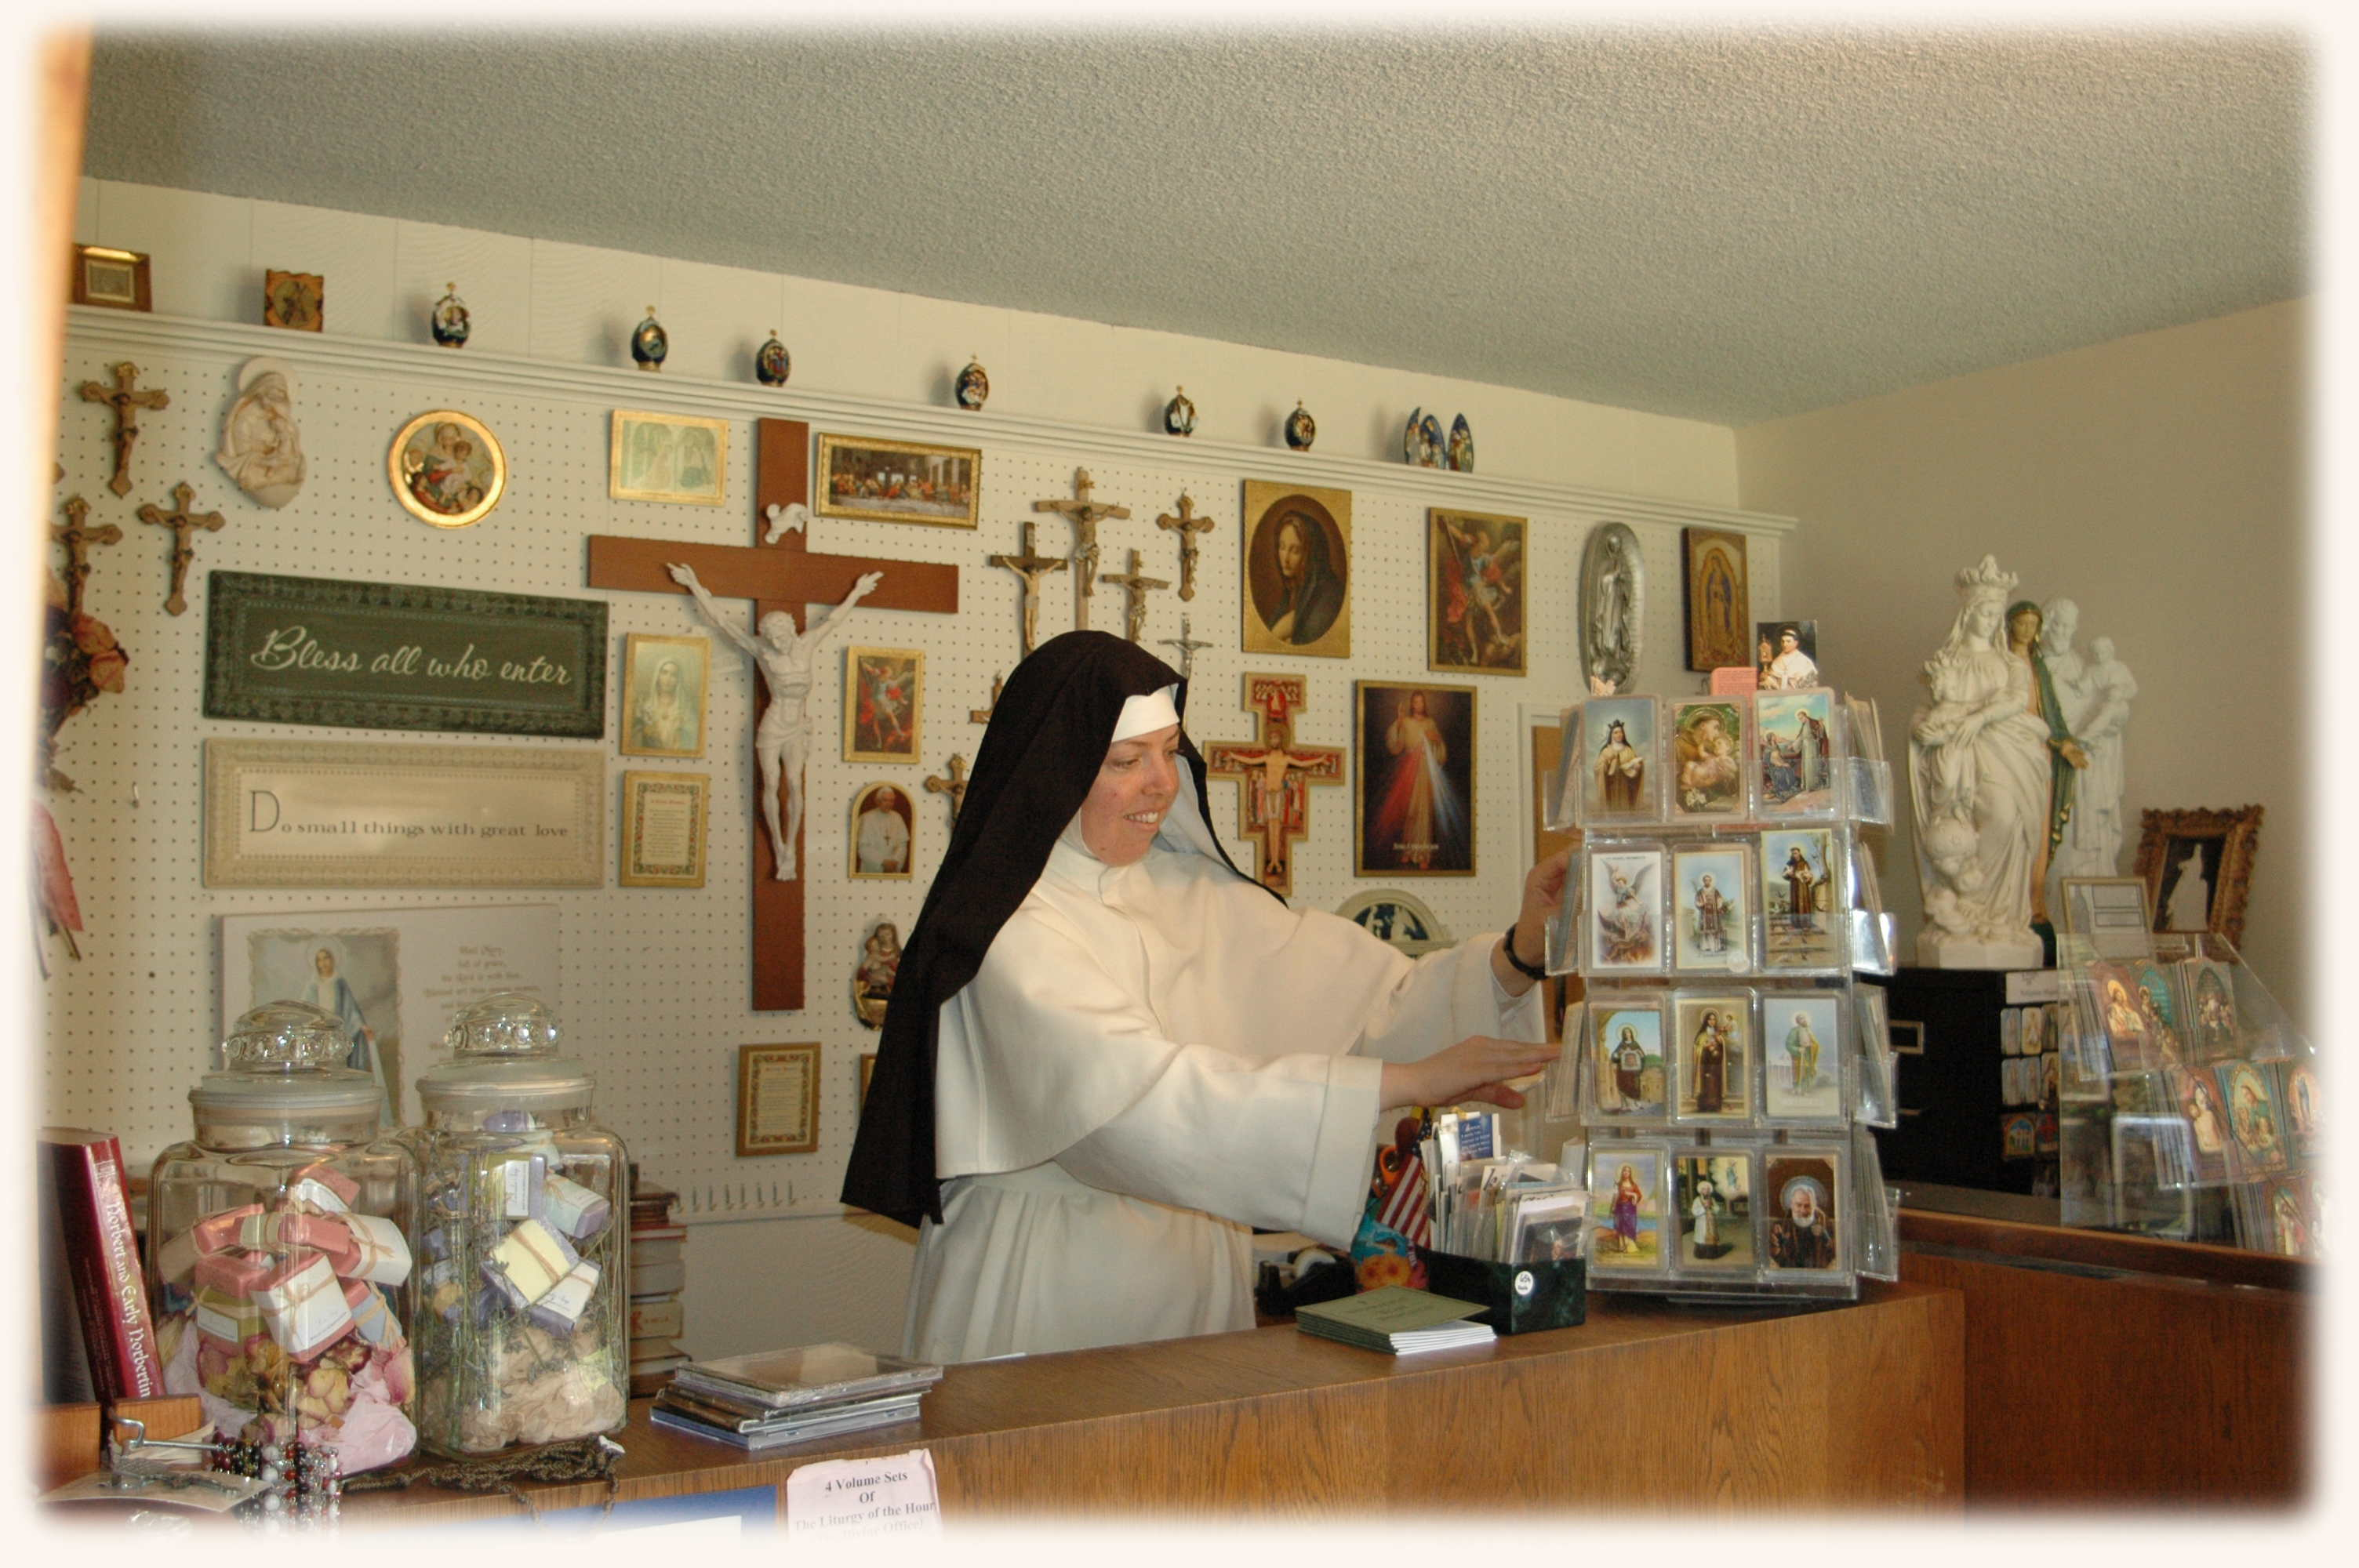 Our Monastery Gift Shop and Bookstore offers a variety of religious books and items, as well as gifts made by the sisters, including Rosaries and other ...